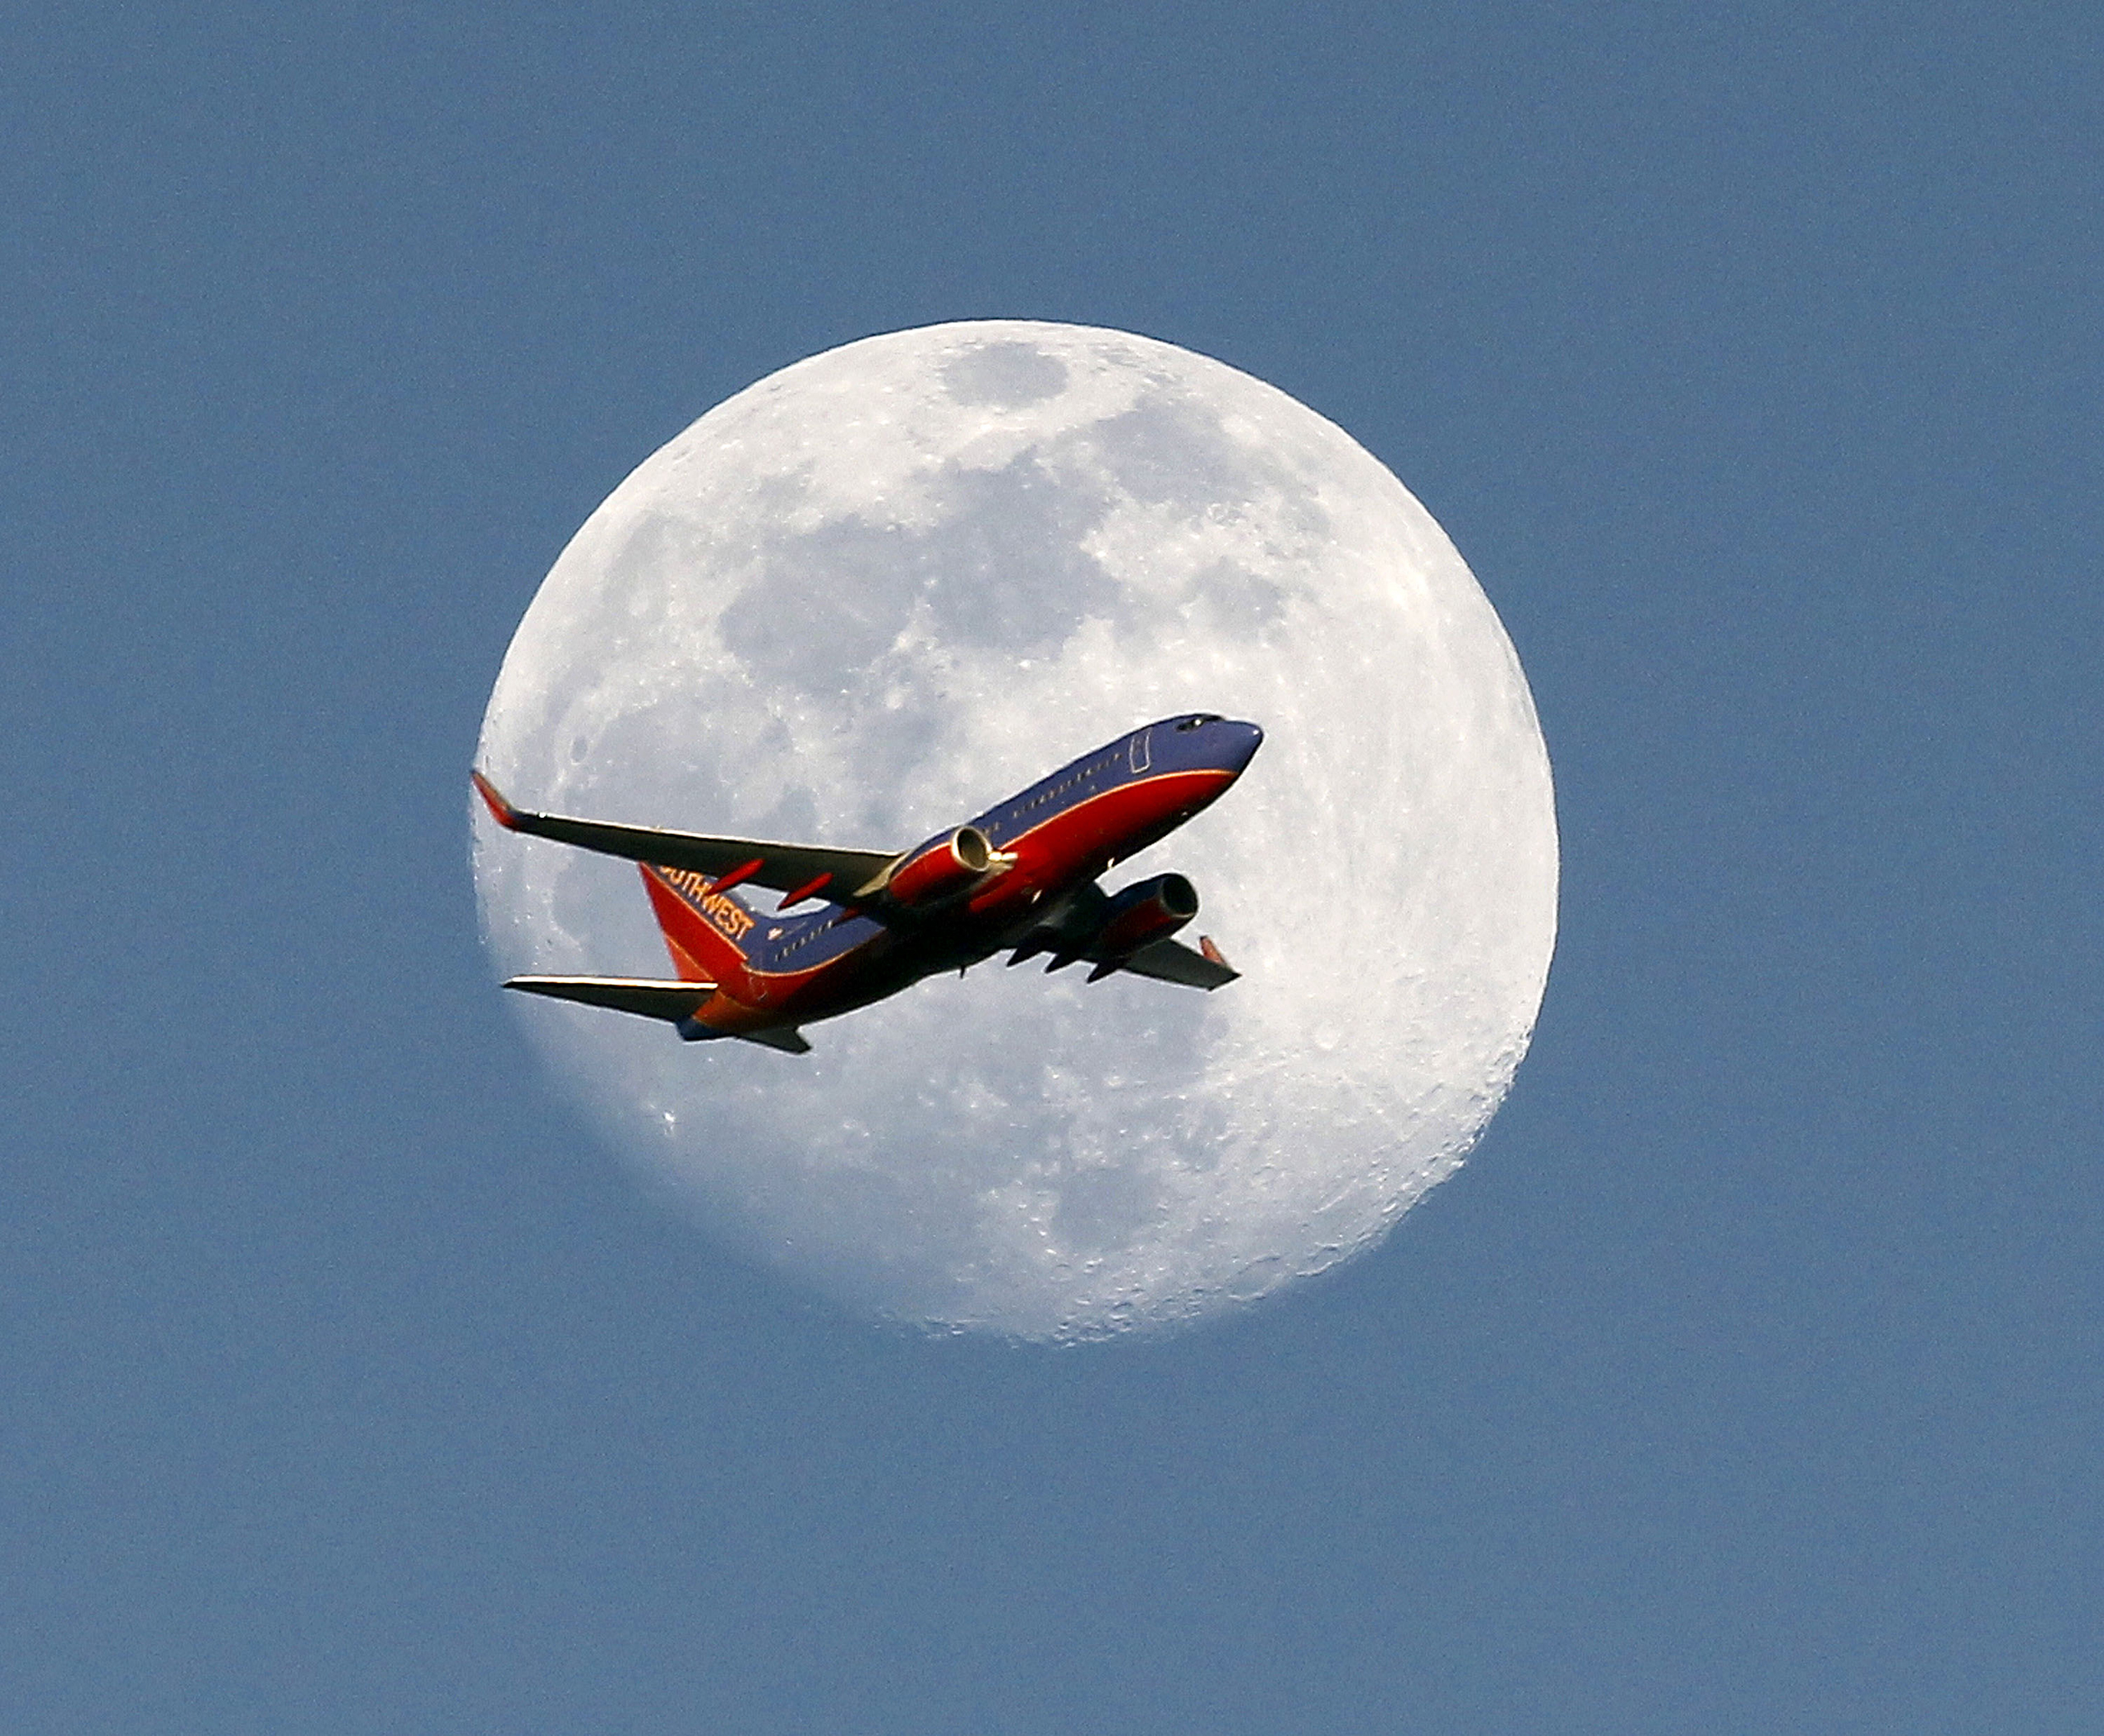 A Southwest Airlines passenger plane crosses the waxing gibbous moon in Whittier, May 30, 2015.